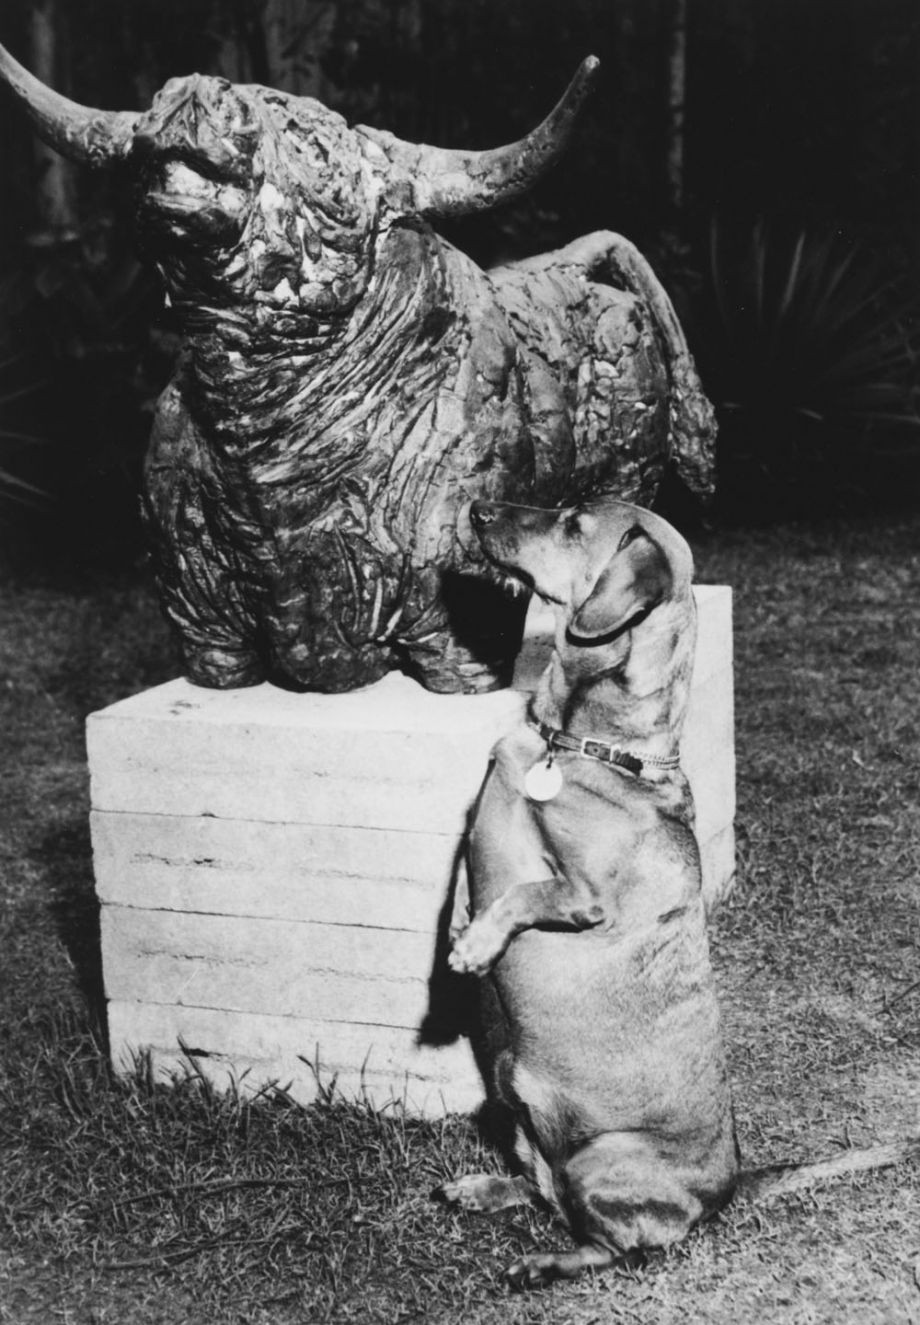 Lindy the Johnstone's dachshund with Bull by Kathleen Shillam in the garden of The Johnstone Gallery at Cintra Road, 1965